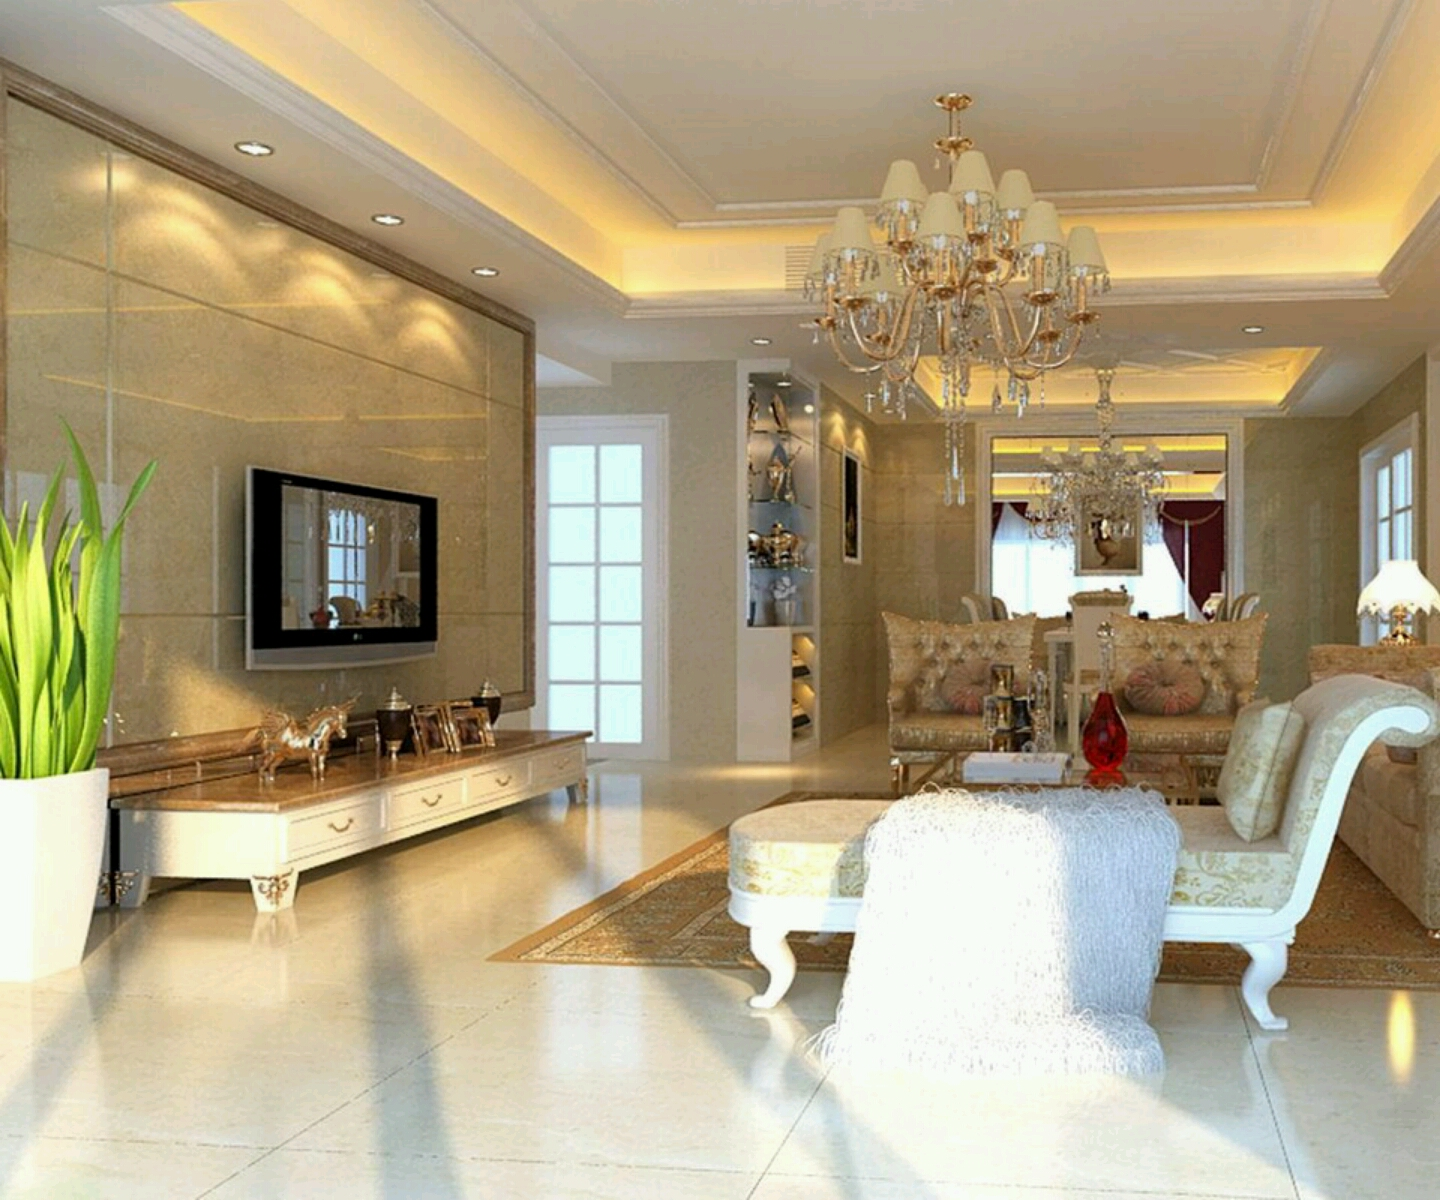 Home decor 2012 luxury homes interior decoration living for Interior home accents